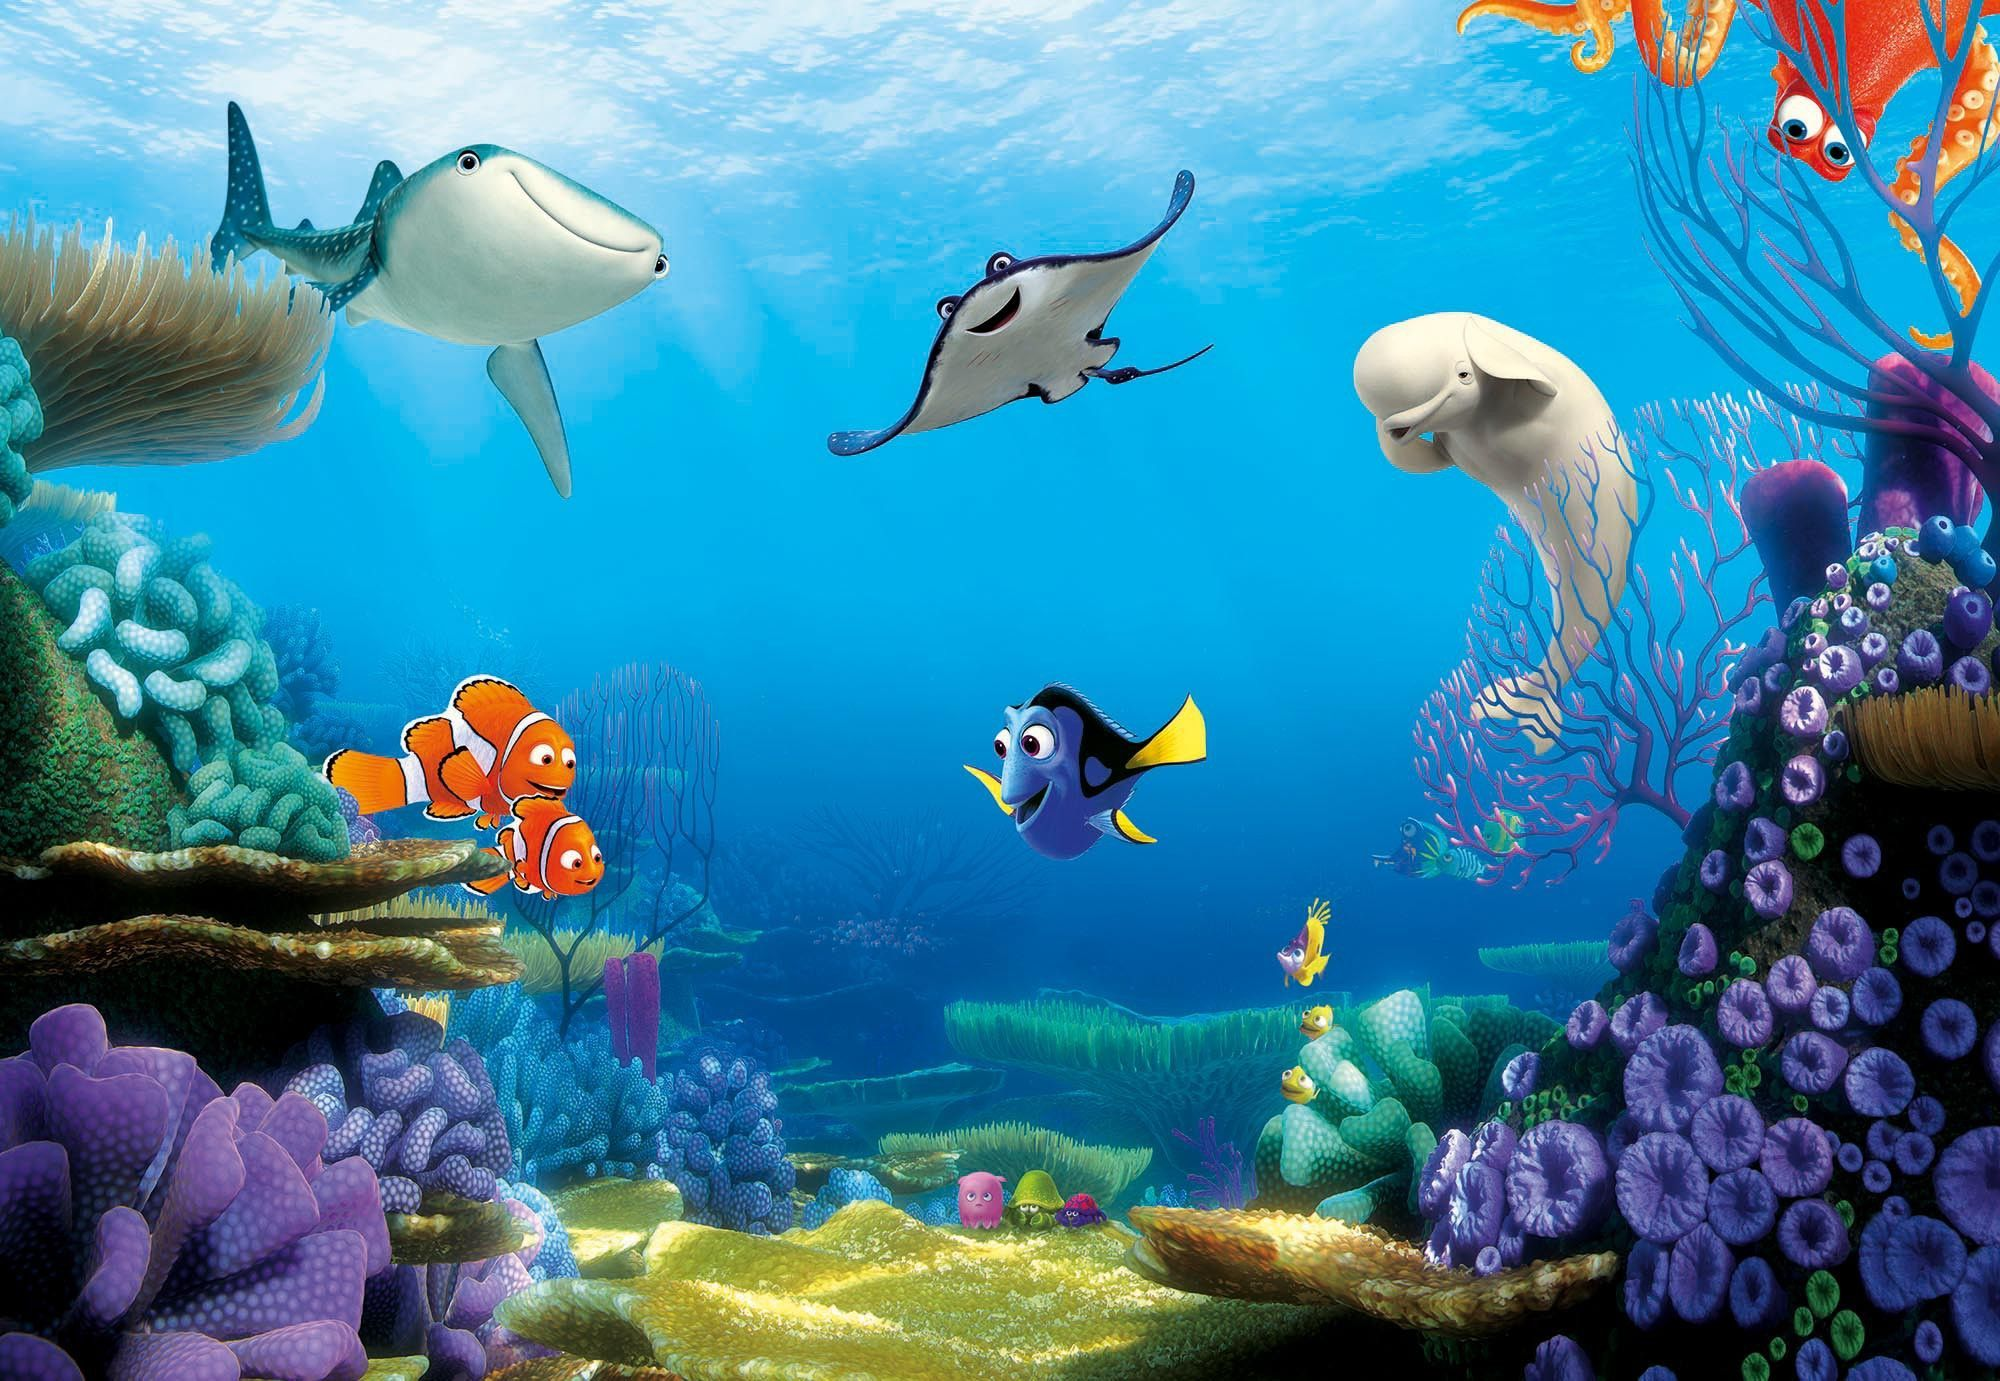 Finding Dory HD Wallpaper Free Download 1024x768 Wallpapers 36